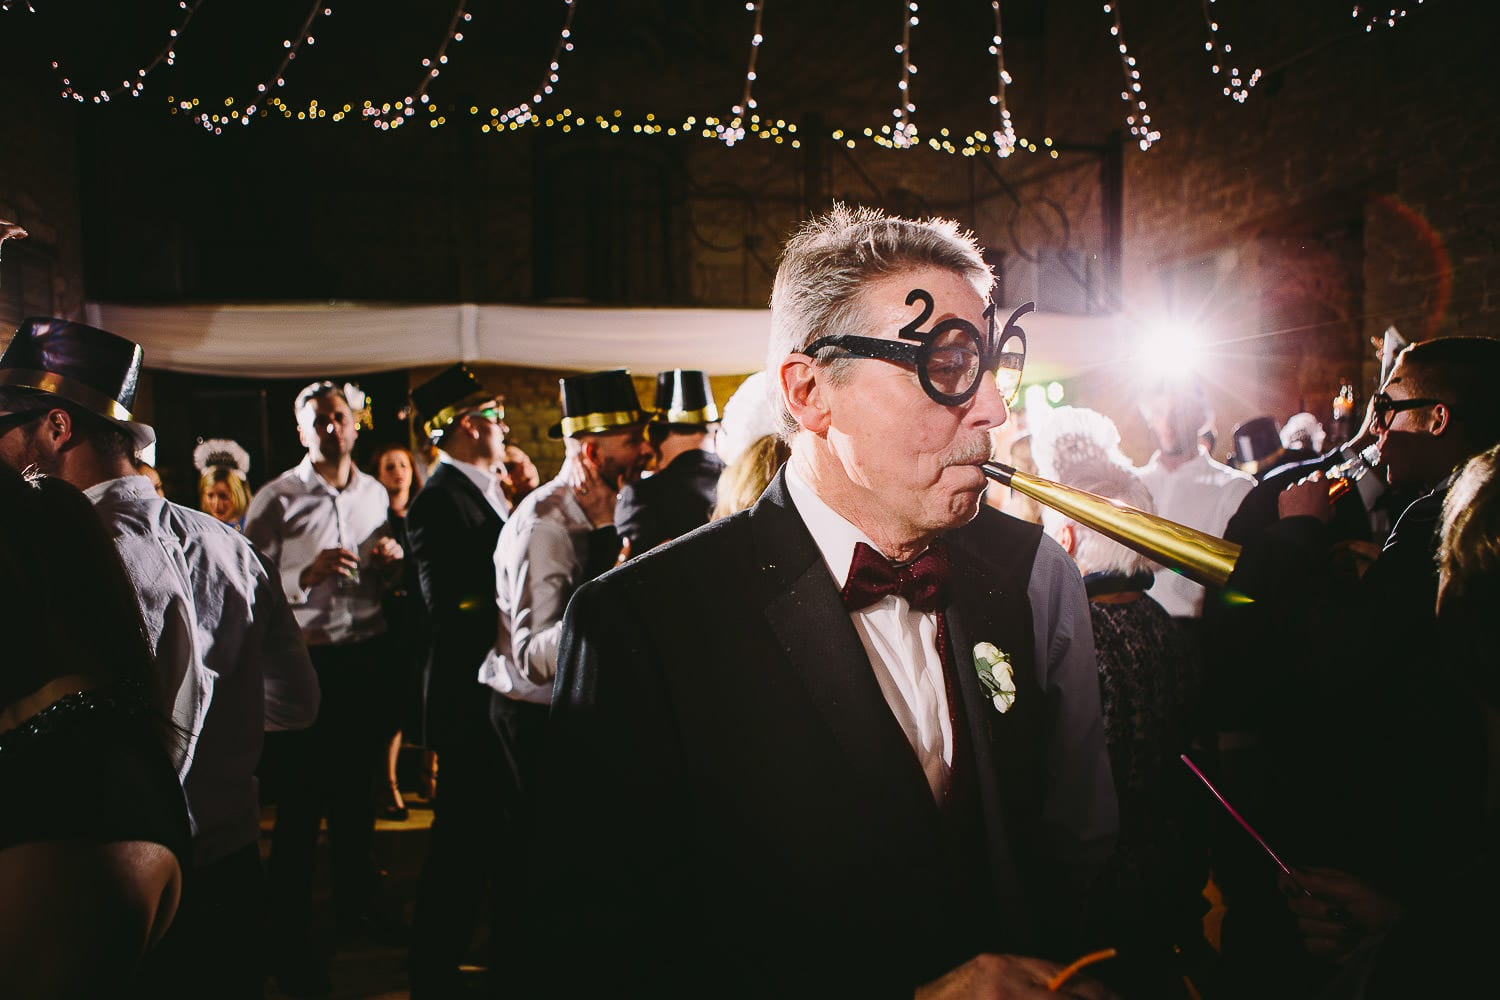 Guest wearing 2016 glasses and blowing a hooter